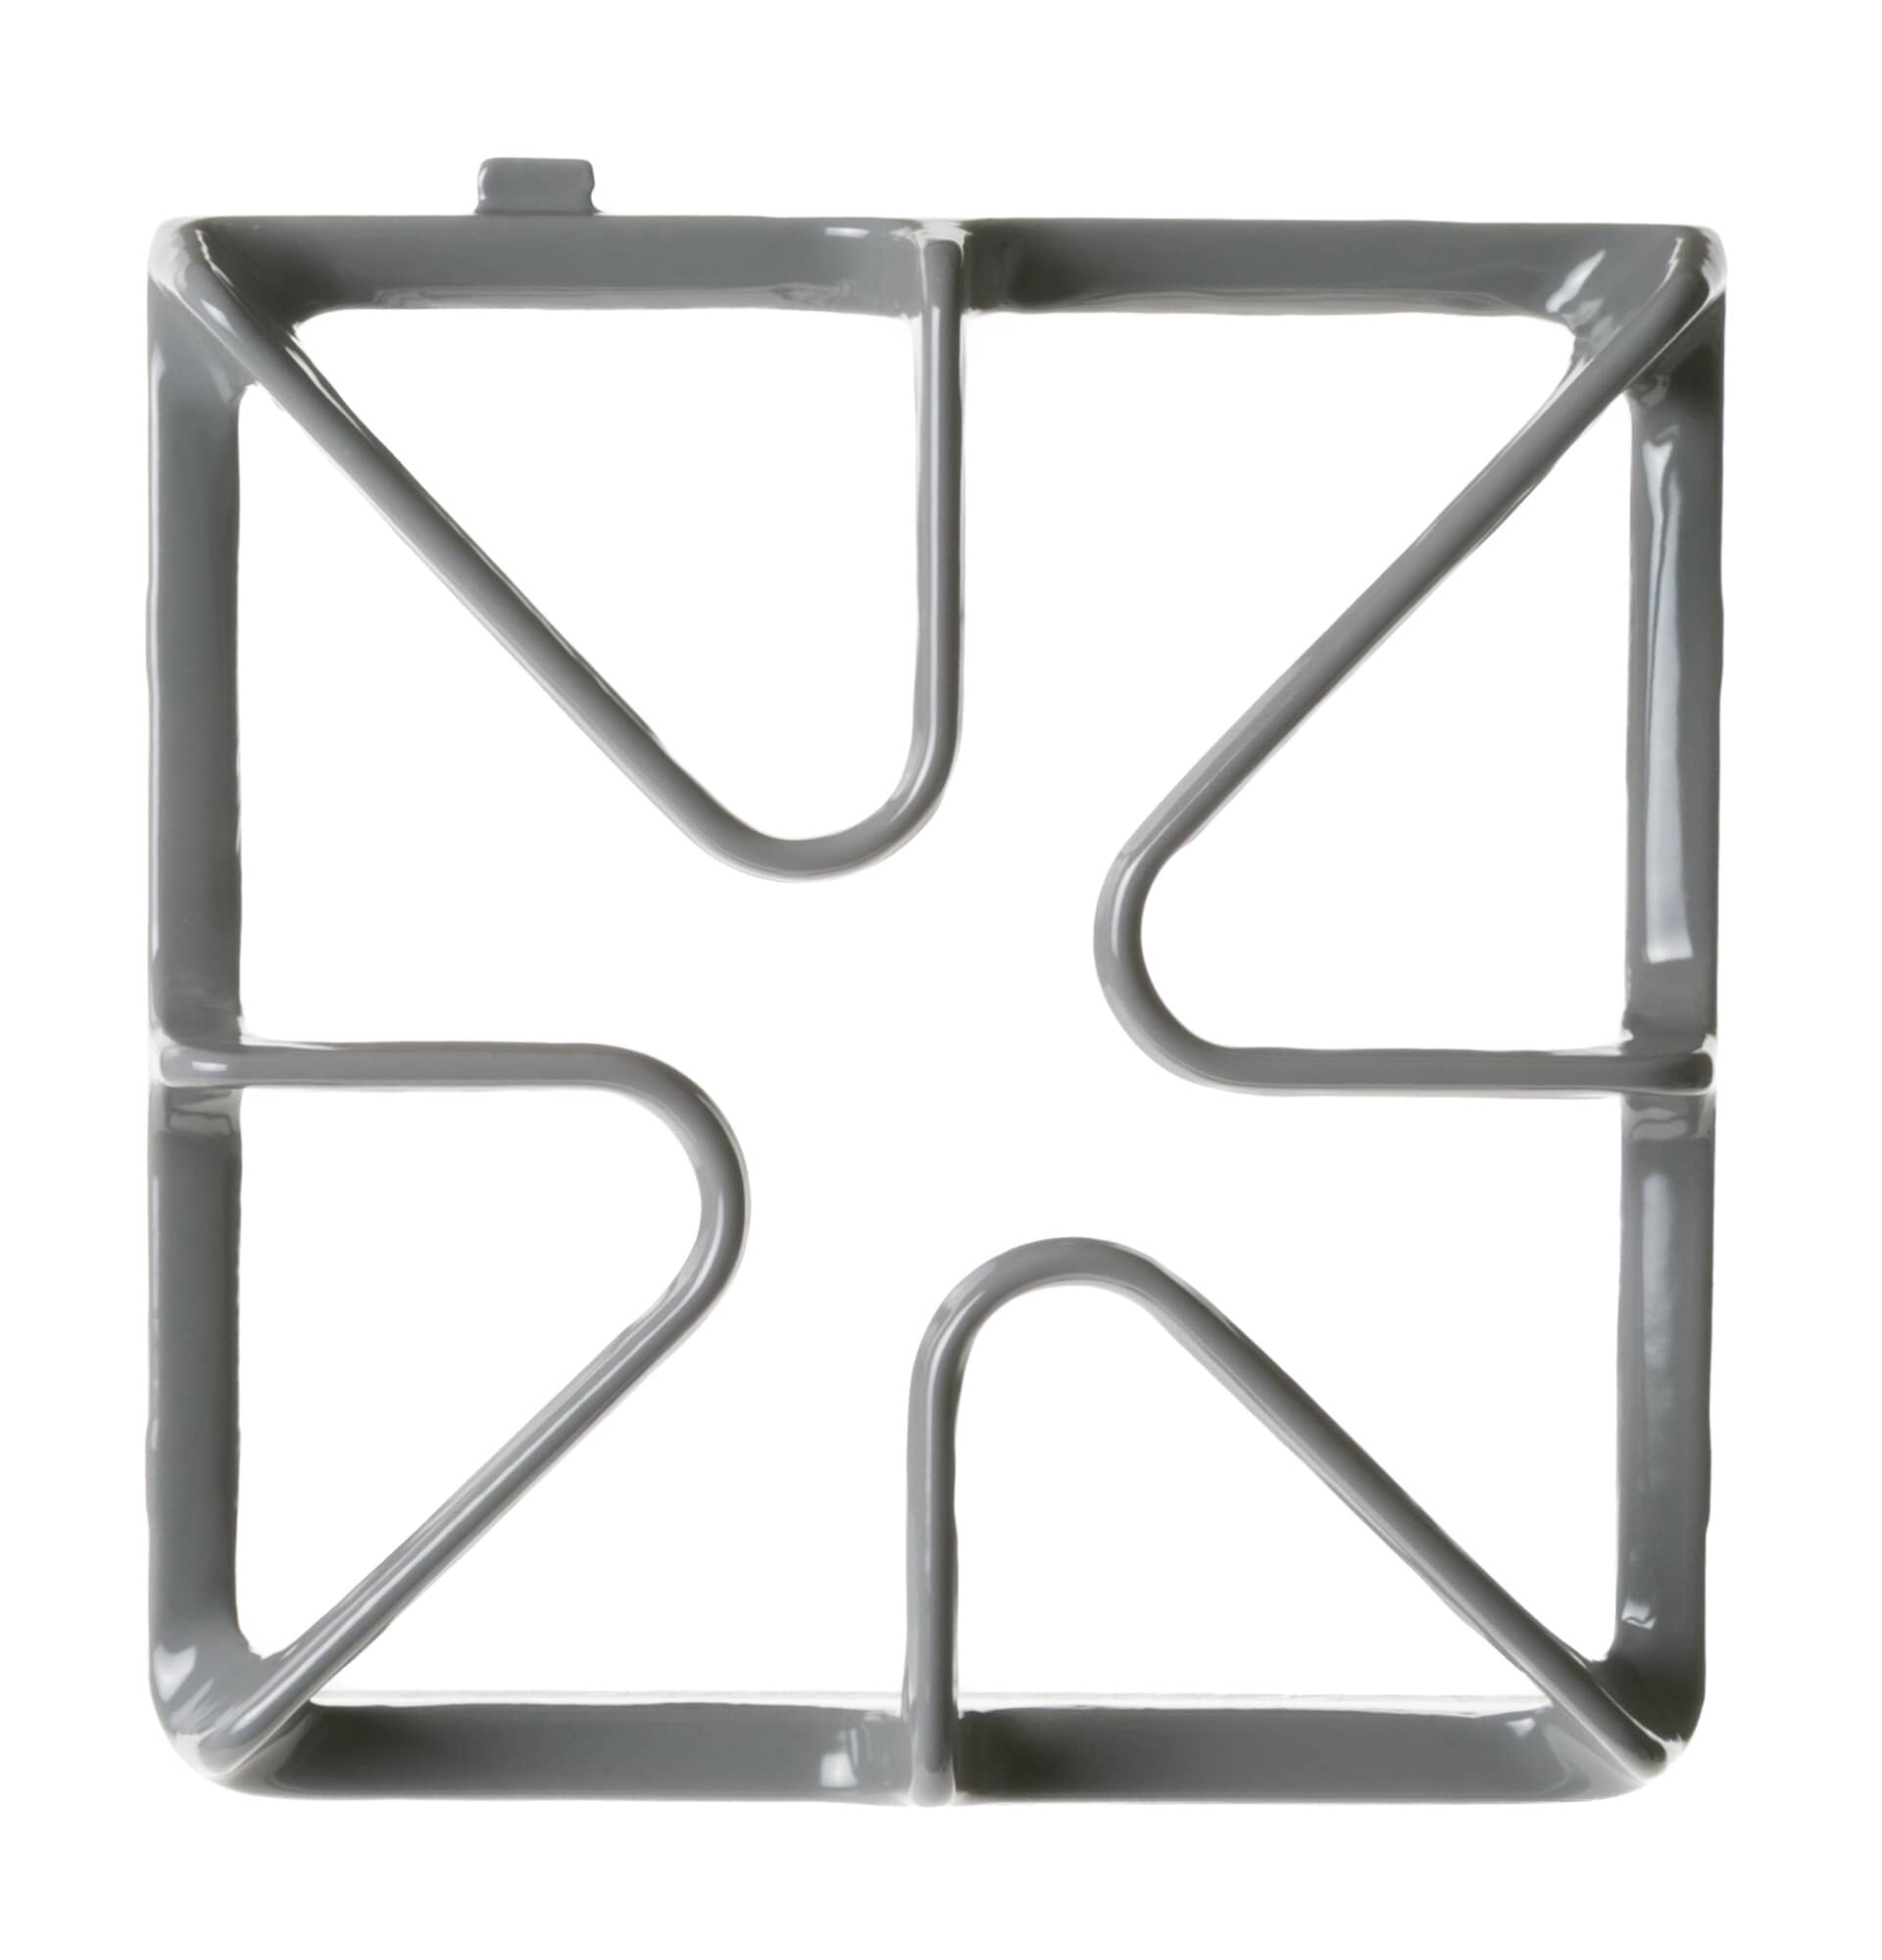 GE Appliance WB31K10045 GENERAL ELECTCRIC GRATE (GREY)